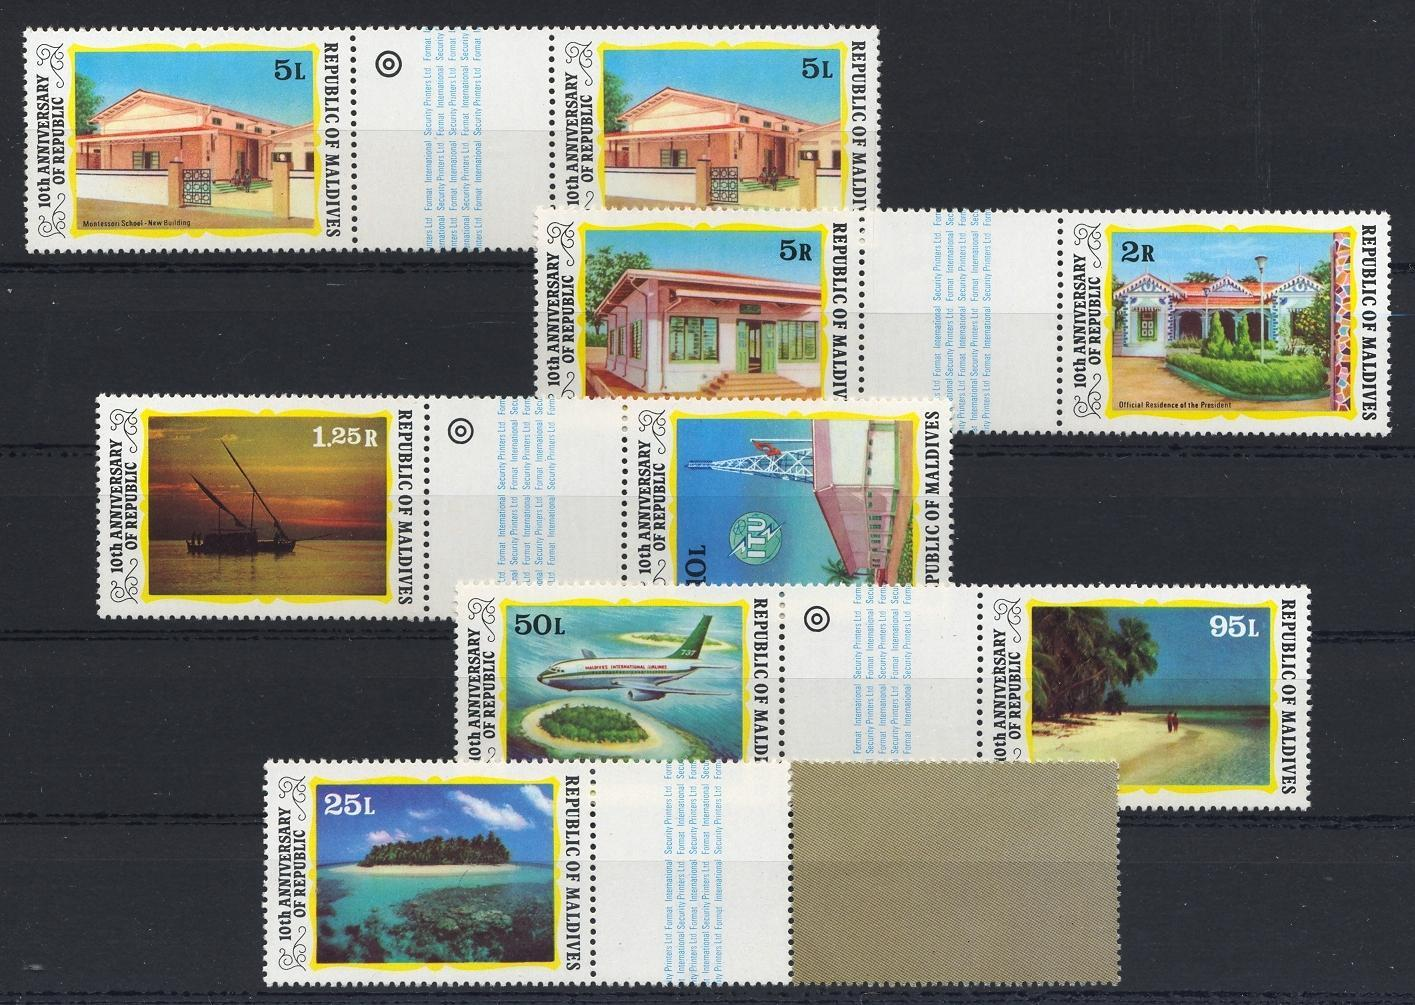 Stamps with Aircraft, Ship, Buildings from Maldives (image for product #032467)